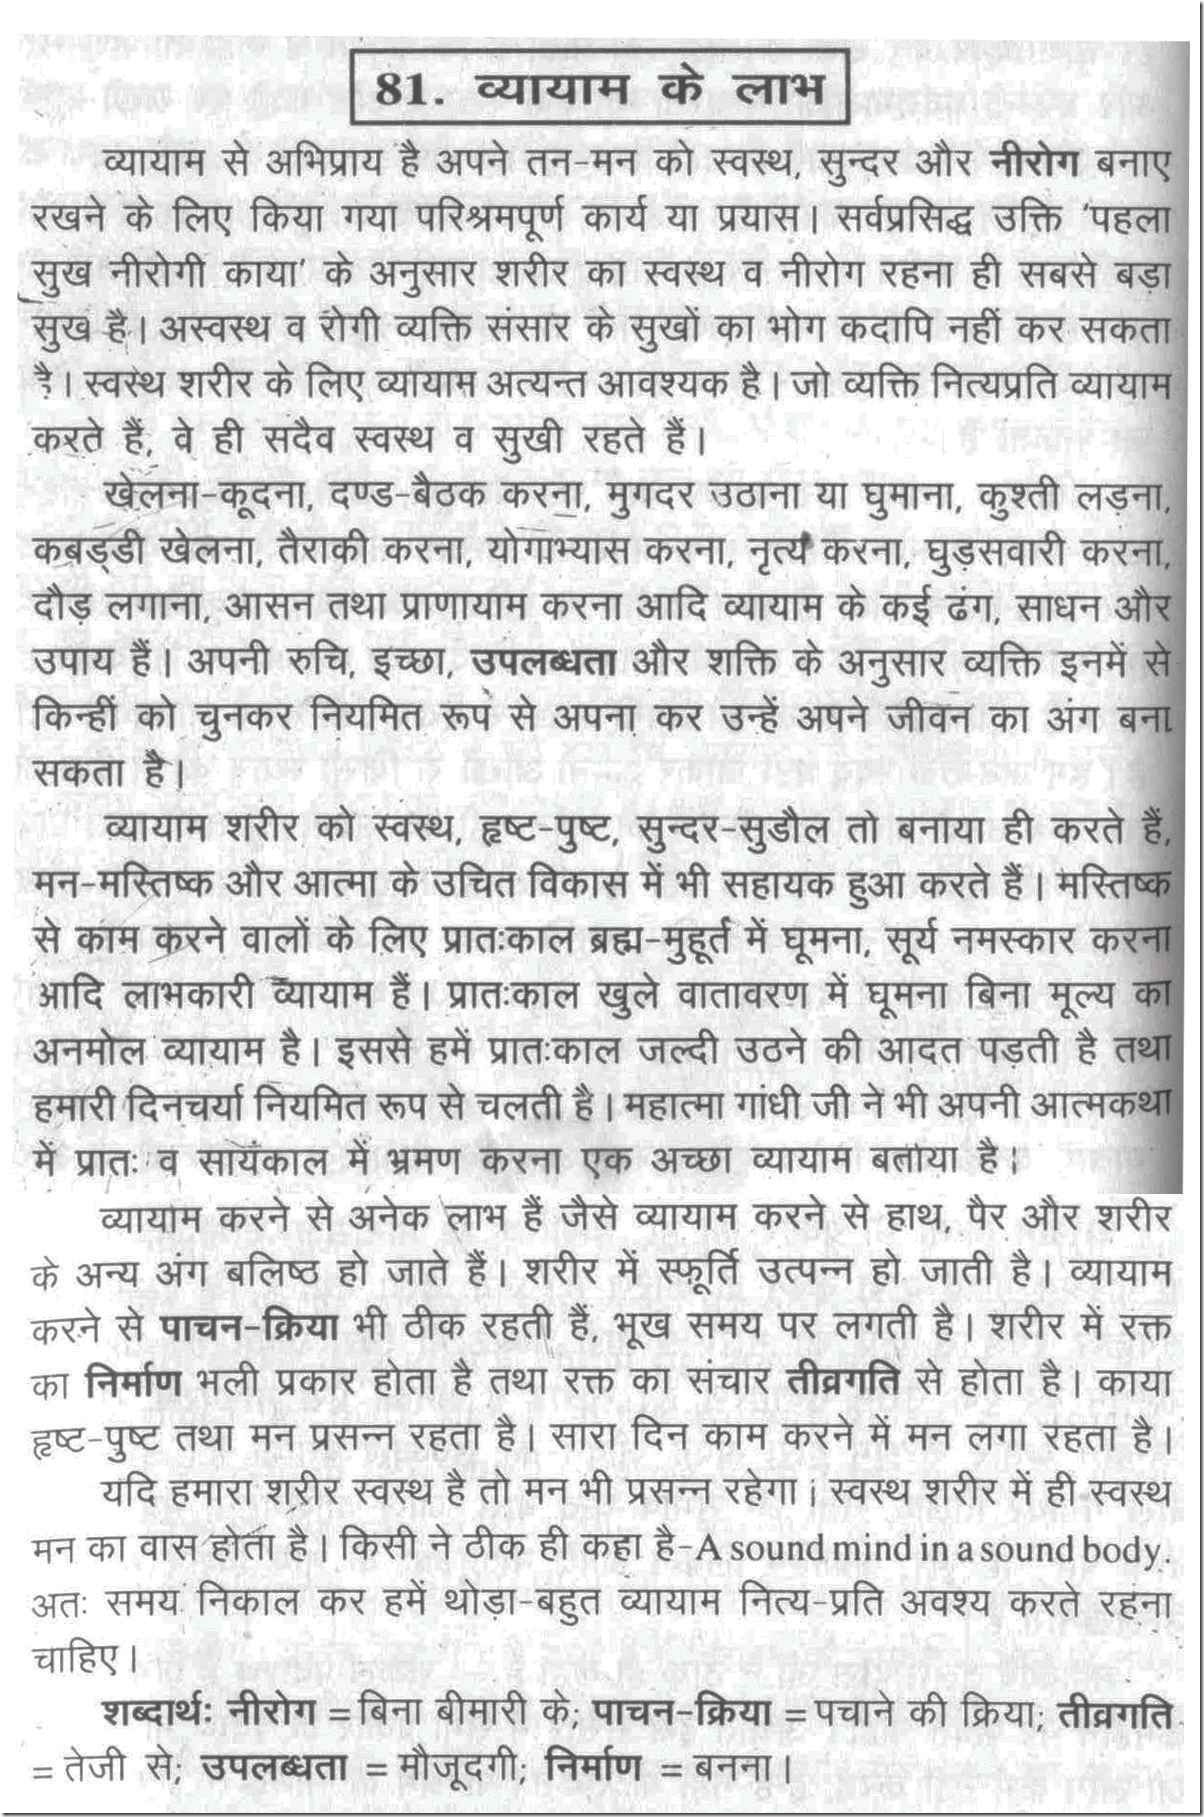 011 2563478896 Essay On Health And Fitness Through Food Good Habits In Hindi Exceptional Bad Healthy Eating Full